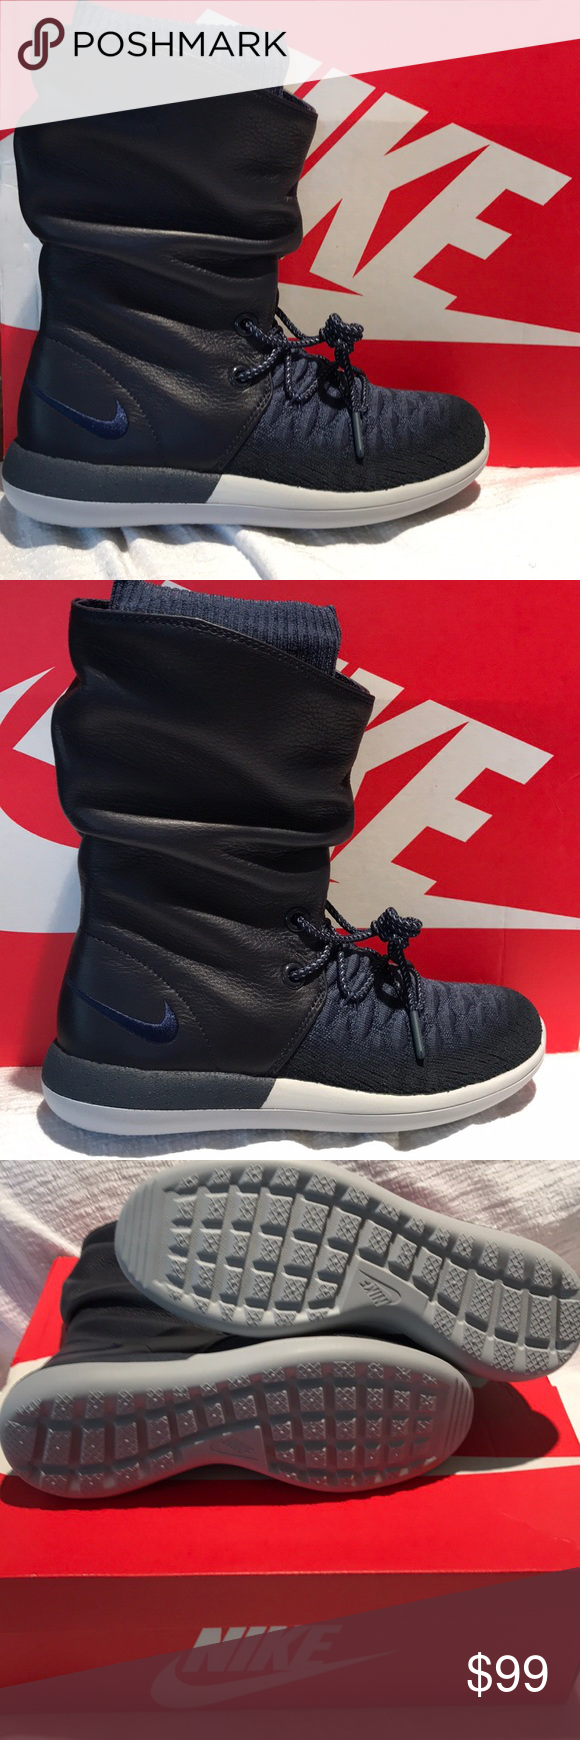 7529a63023833 Nike Womens Roshe Two Hi Flyknit College Navy 6.5 New in the Box Nike Roshe  Run - a sleek and very comfortable lightweight sneaker with timeless design.